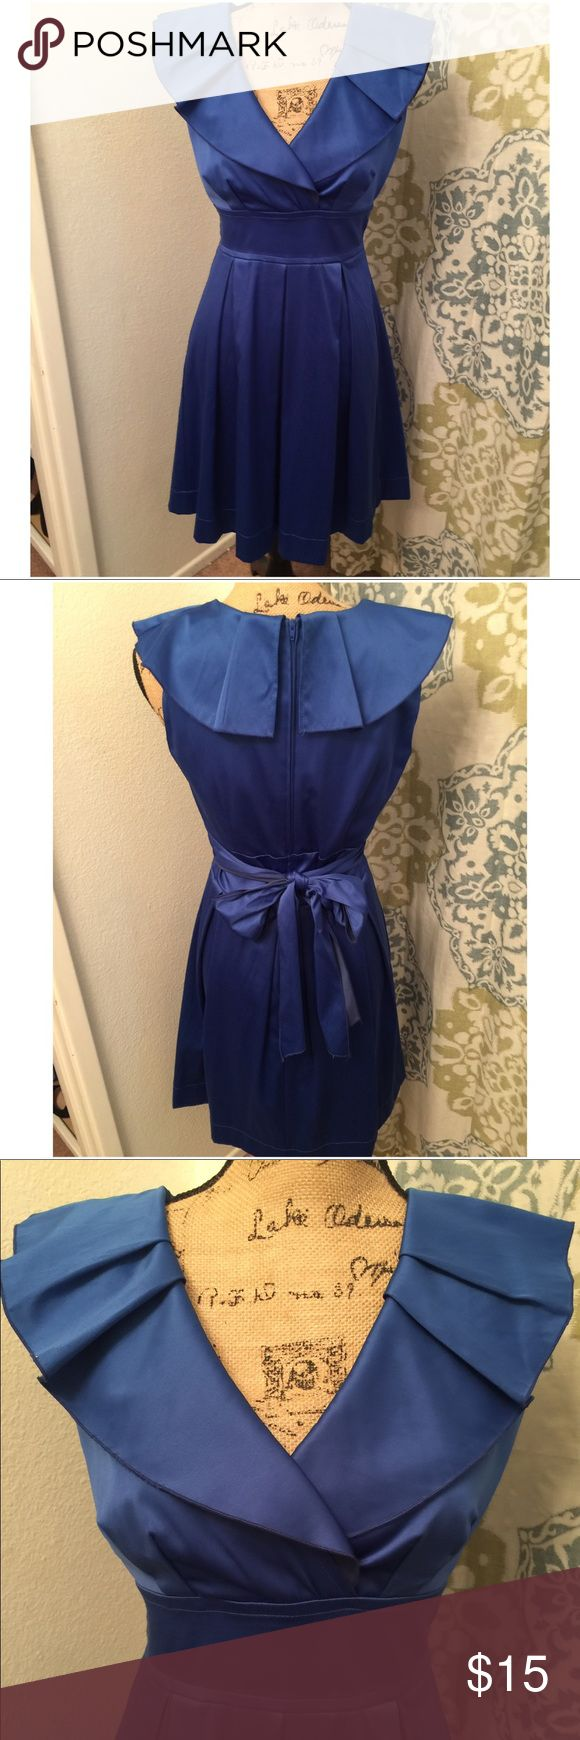 Windsor royal blue dress Such a pretty dress!! Sateen like sheen. Worn 1 time!! No flaws other than deodorant marks on the underarm. It does need to be dry cleaned (I didn't want to invest in dry cleaning since I'm selling it at such a low price) it was only worn for 1 hour to a civil wedding ceremony! WINDSOR Dresses Midi